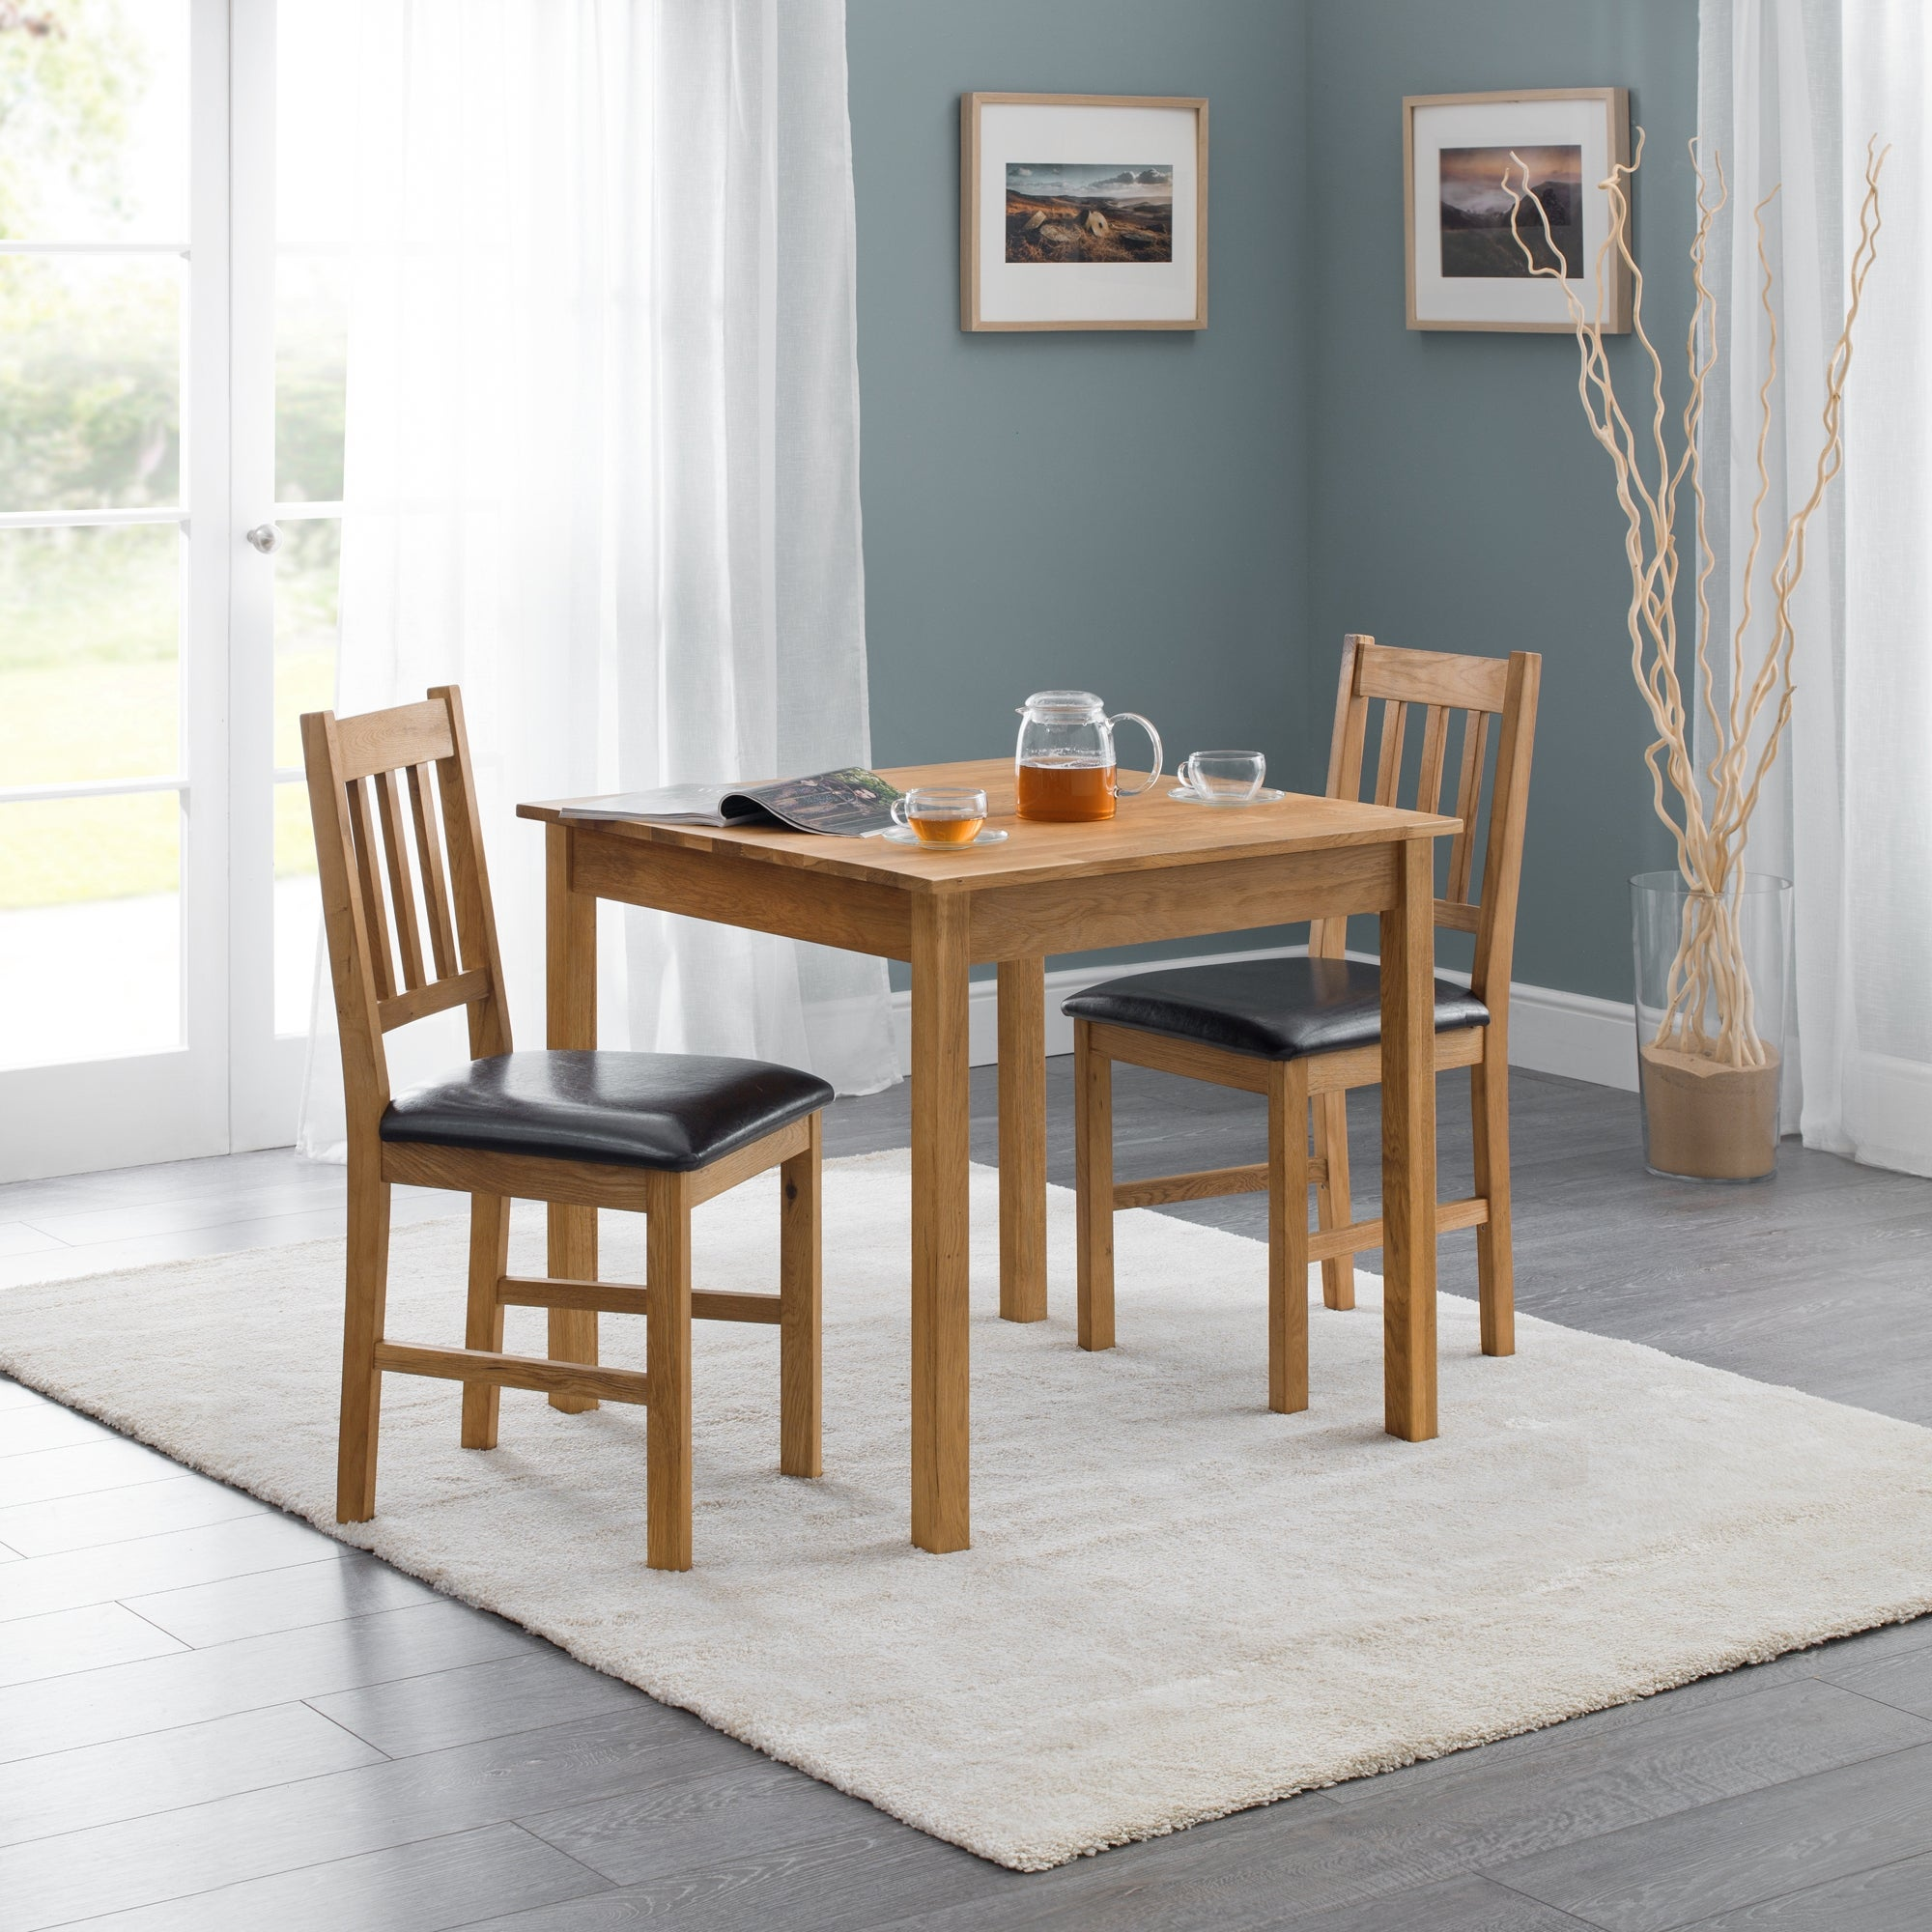 Coxmoor Oak Square Dining Table Natural